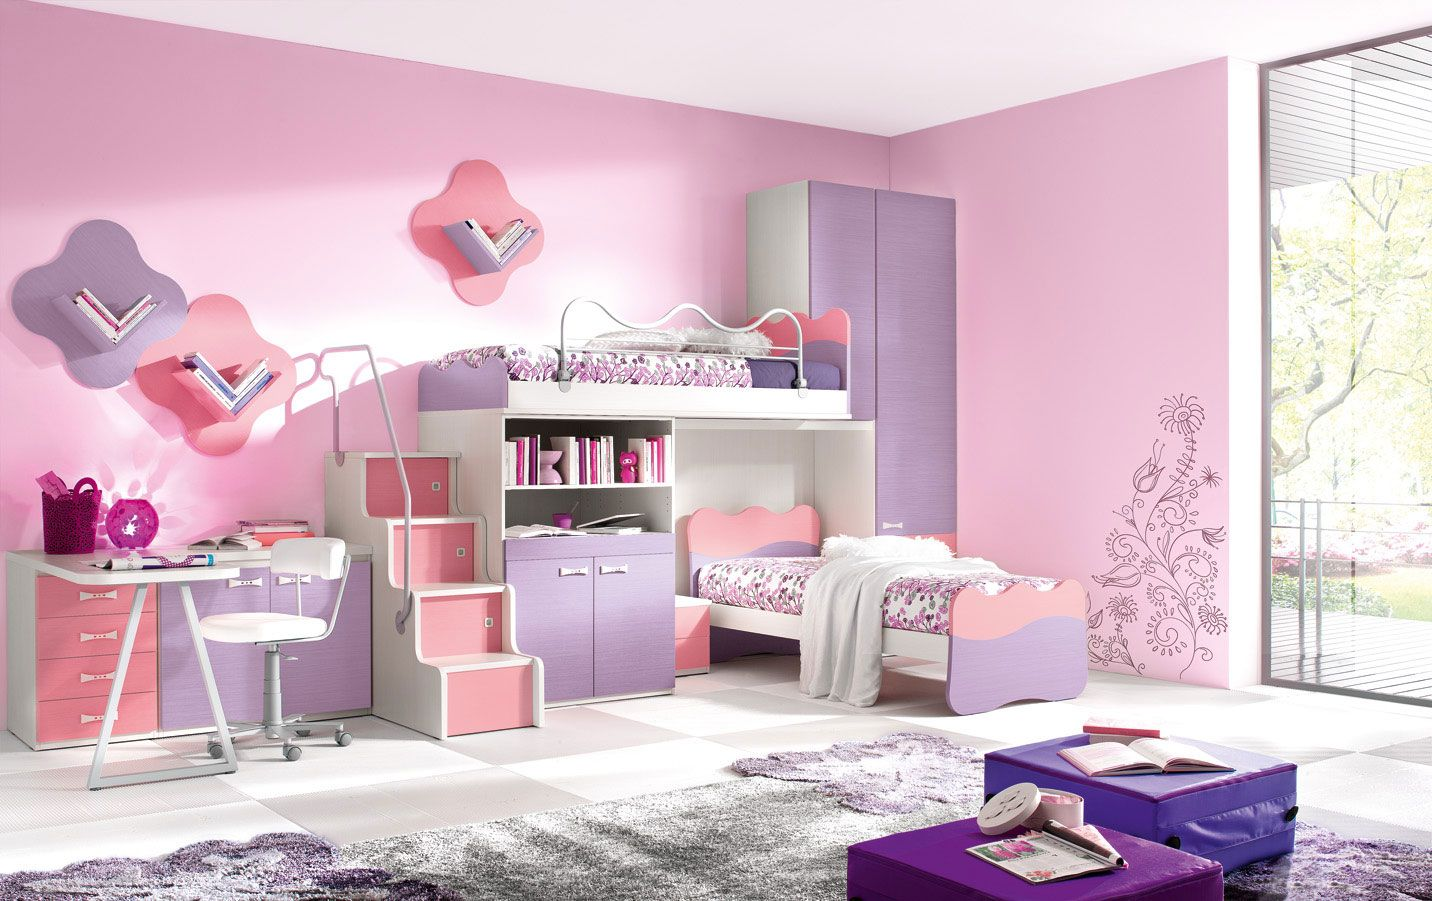 Kids Bedroom Beautiful Soft Pink Shared Girls Bedroom With Lovely Furniture V Shaped Wall Shelves Love Modern Kids Bedroom Girl Bedroom Decor Girls Room Design